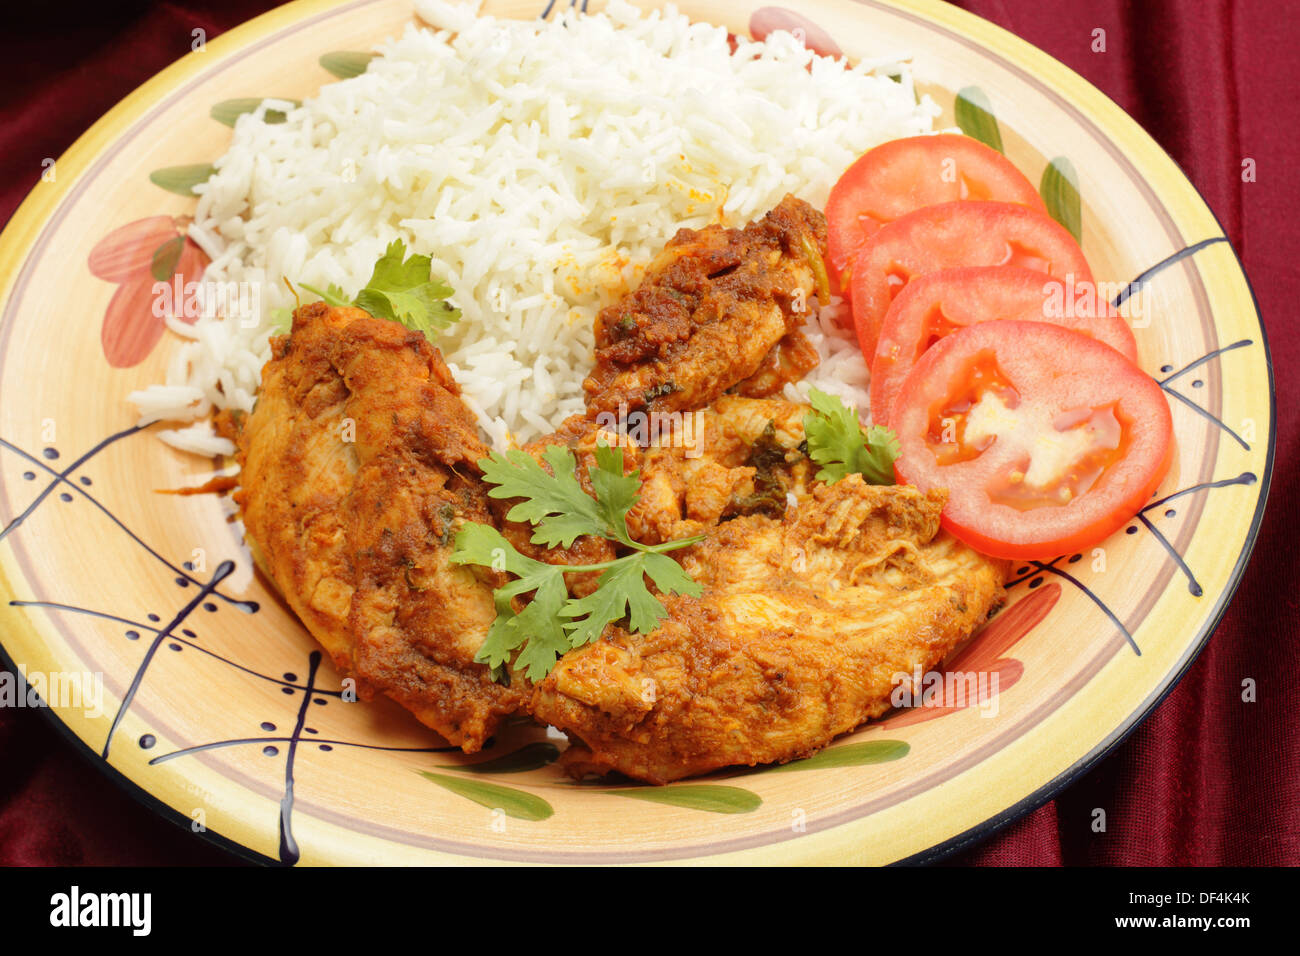 Kashmiri chicken, pieces of meat marinaded in spice mix and tomato ketchup, then fried with garlic and ginger - Stock Image